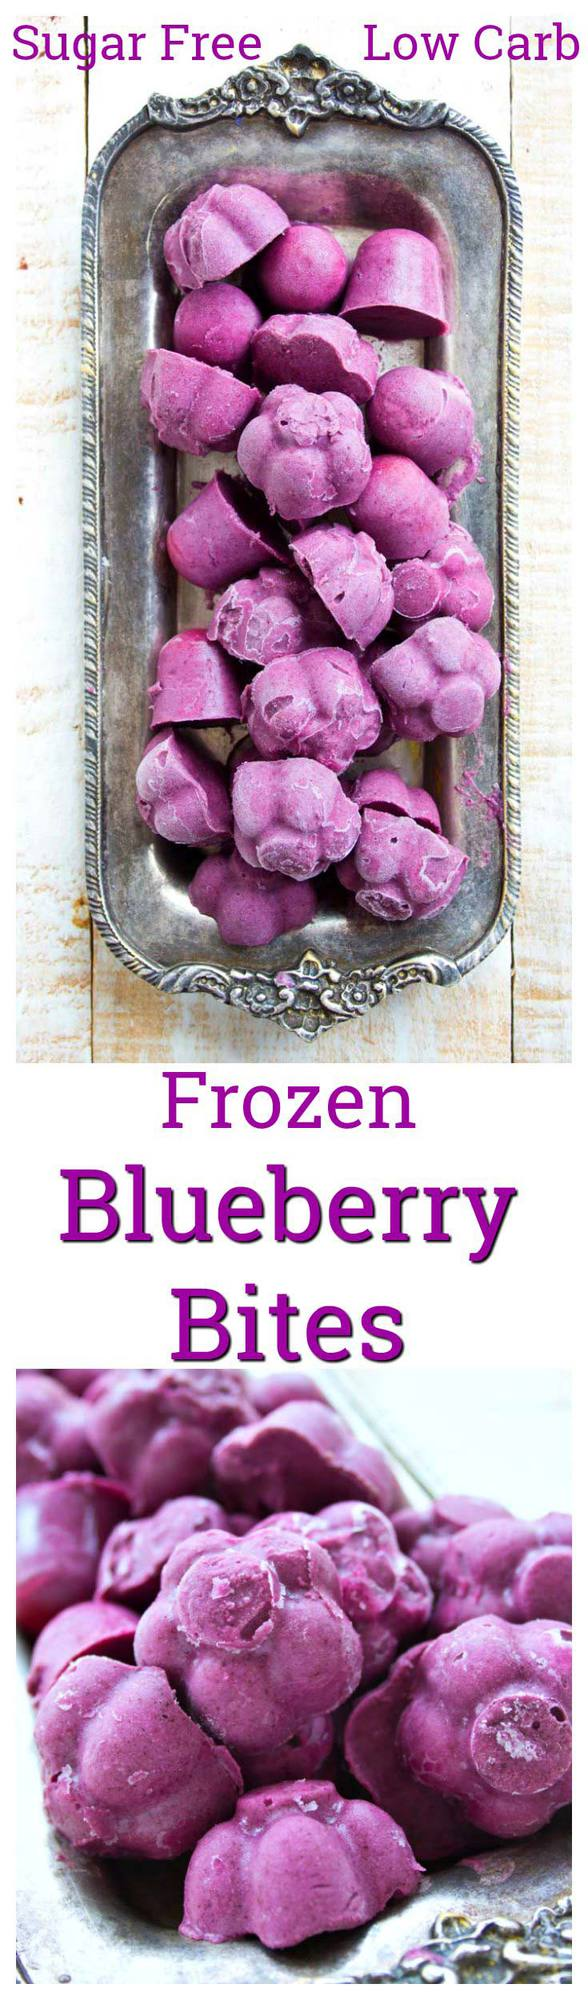 These 3 ingredient frozen blueberry bites are such a refreshing fruity treat. Sweetened with stevia, it's an easy recipe that is low carb, gluten free and vegan. Can be made in any ice cube tray!